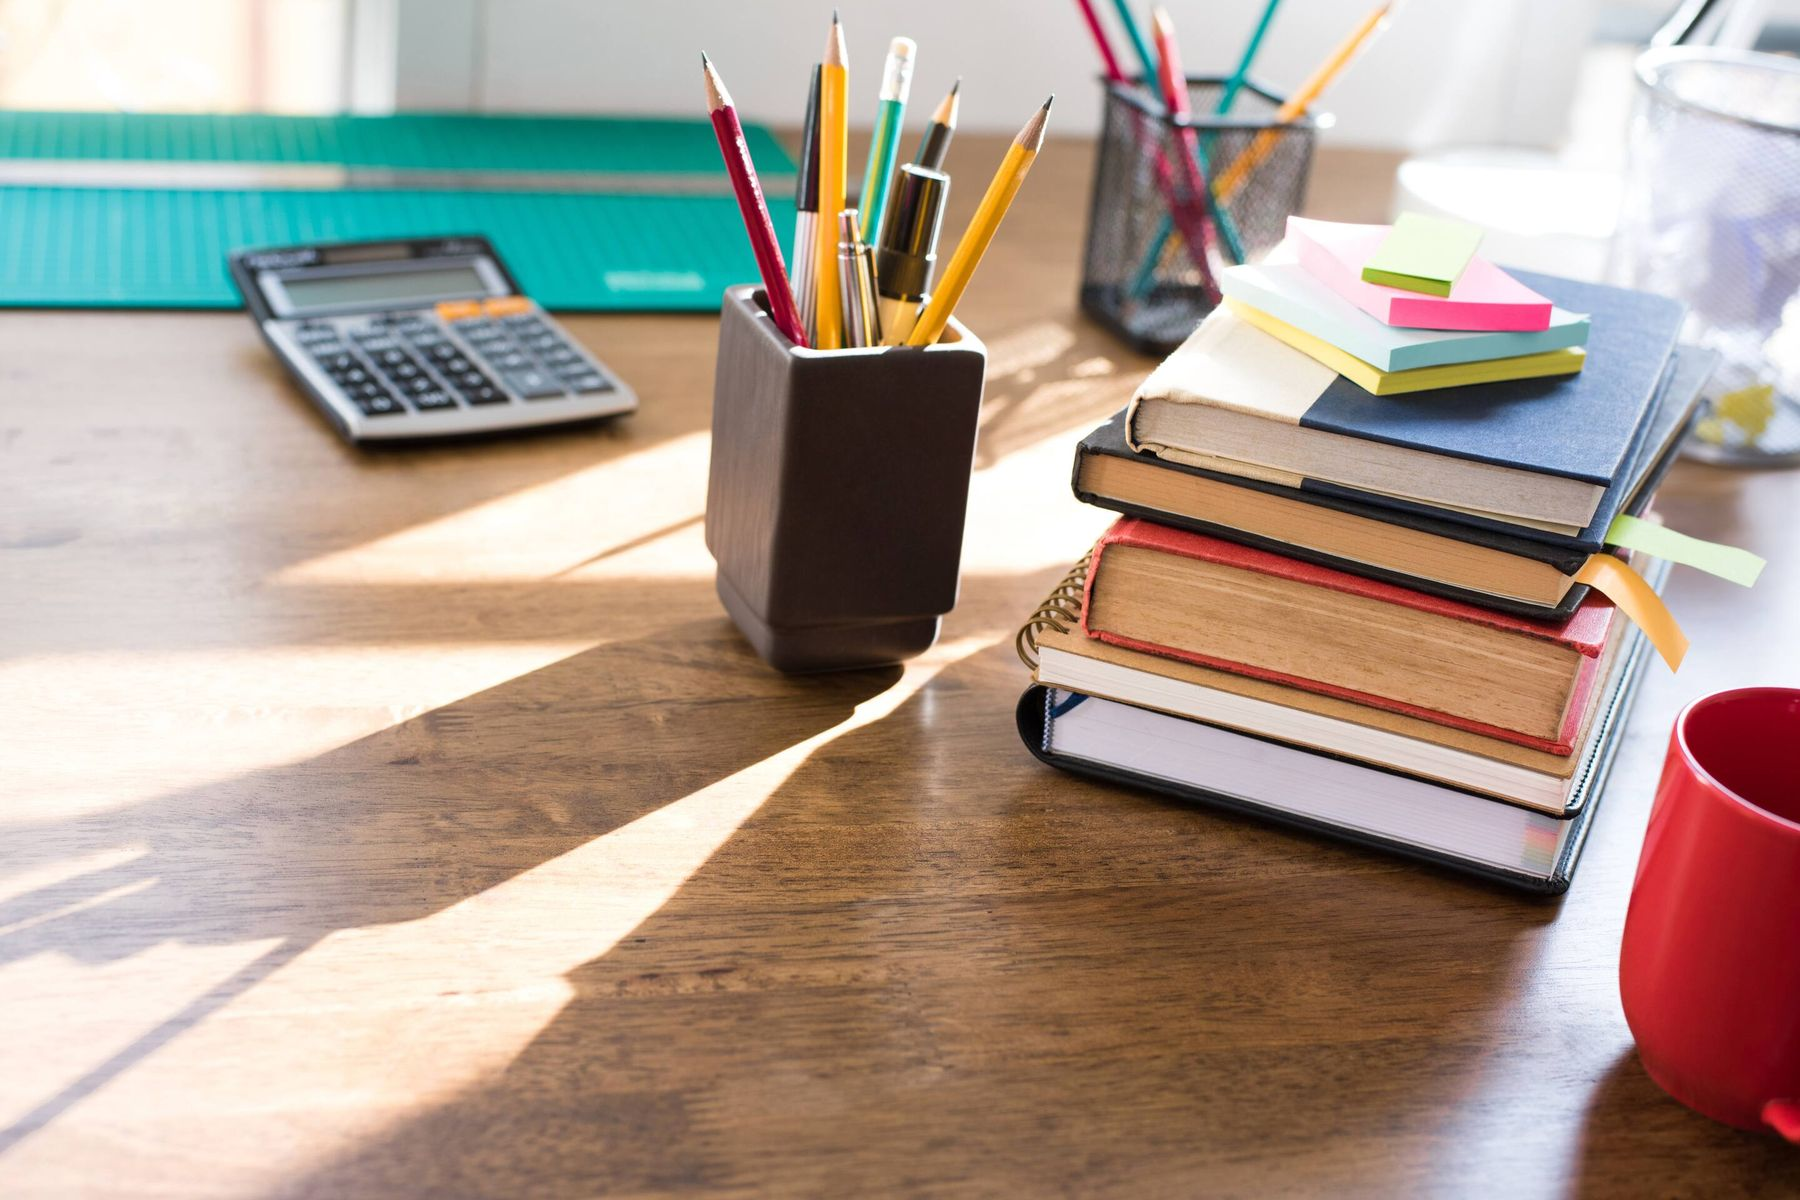 Did your child drop ink in her pen-holder? Here's how to clean up